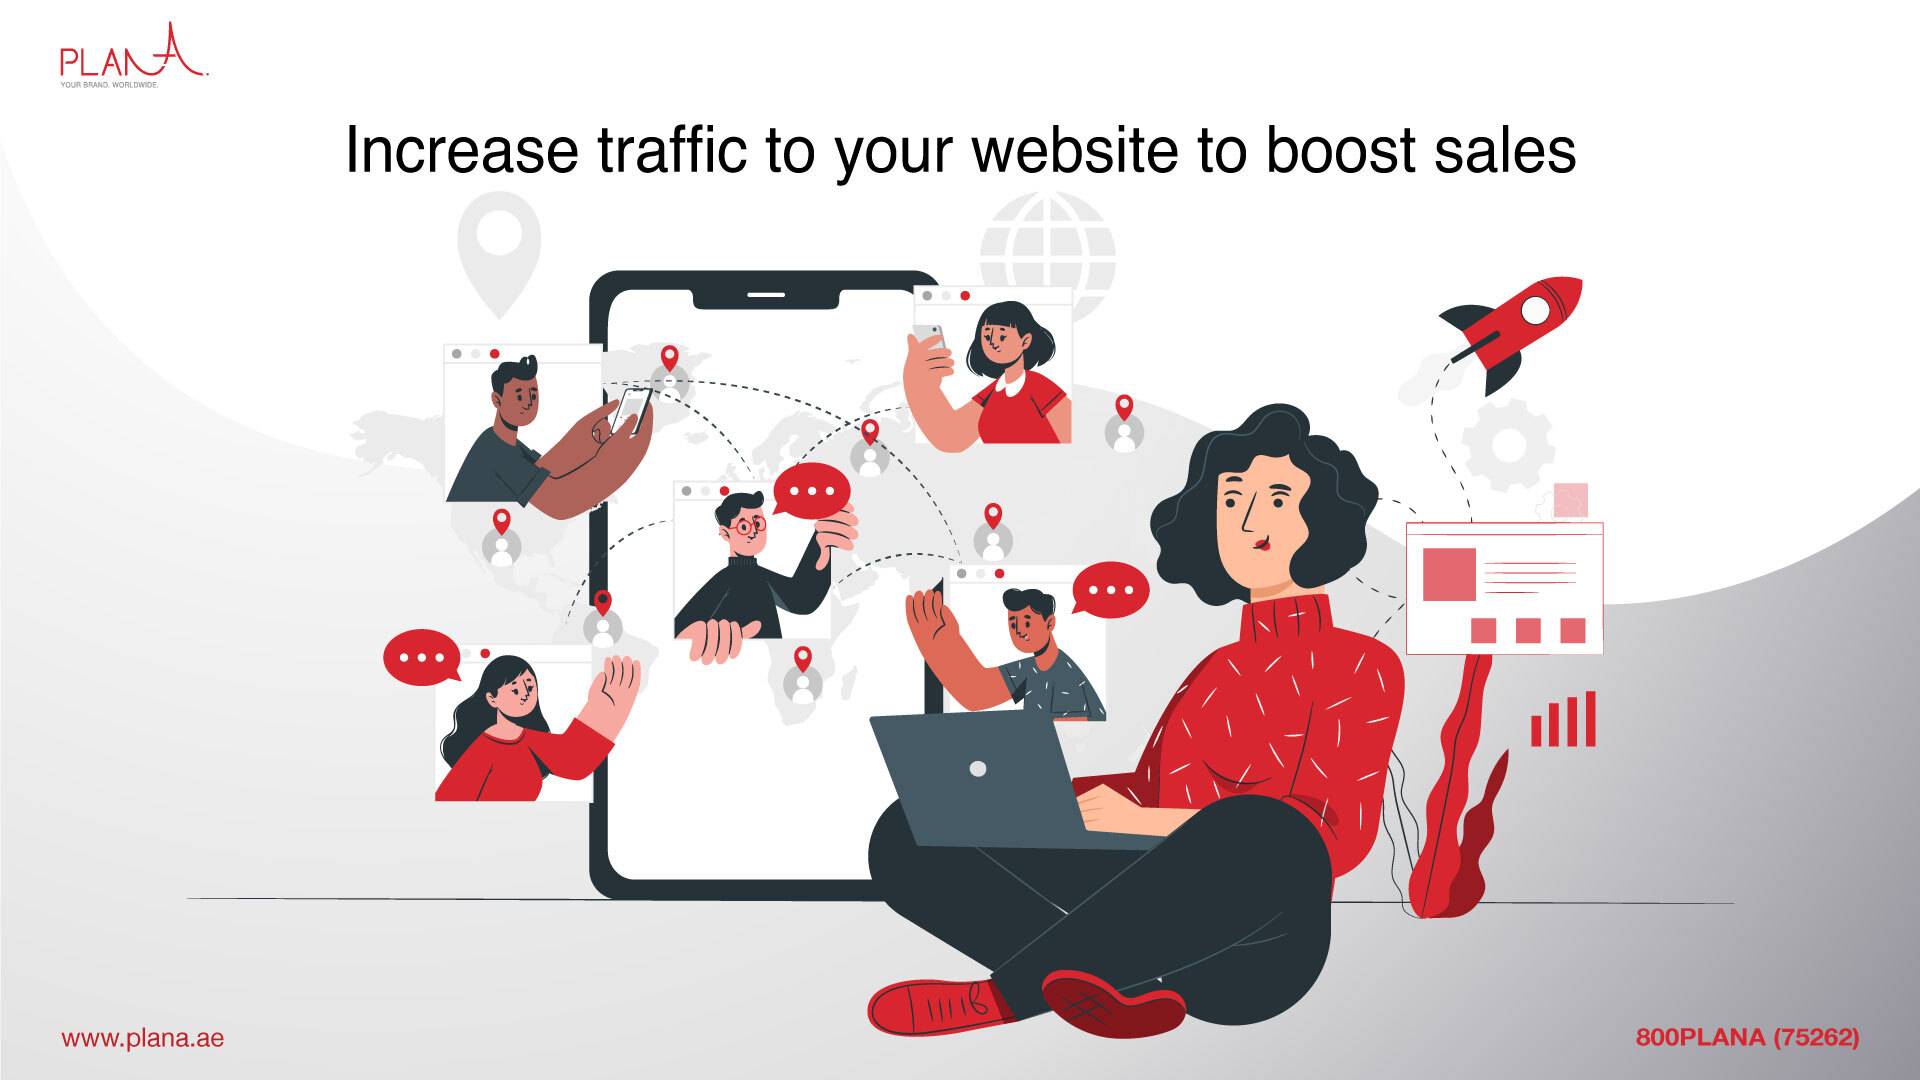 How Can I Increase Traffic to My Website to Boost Sales?